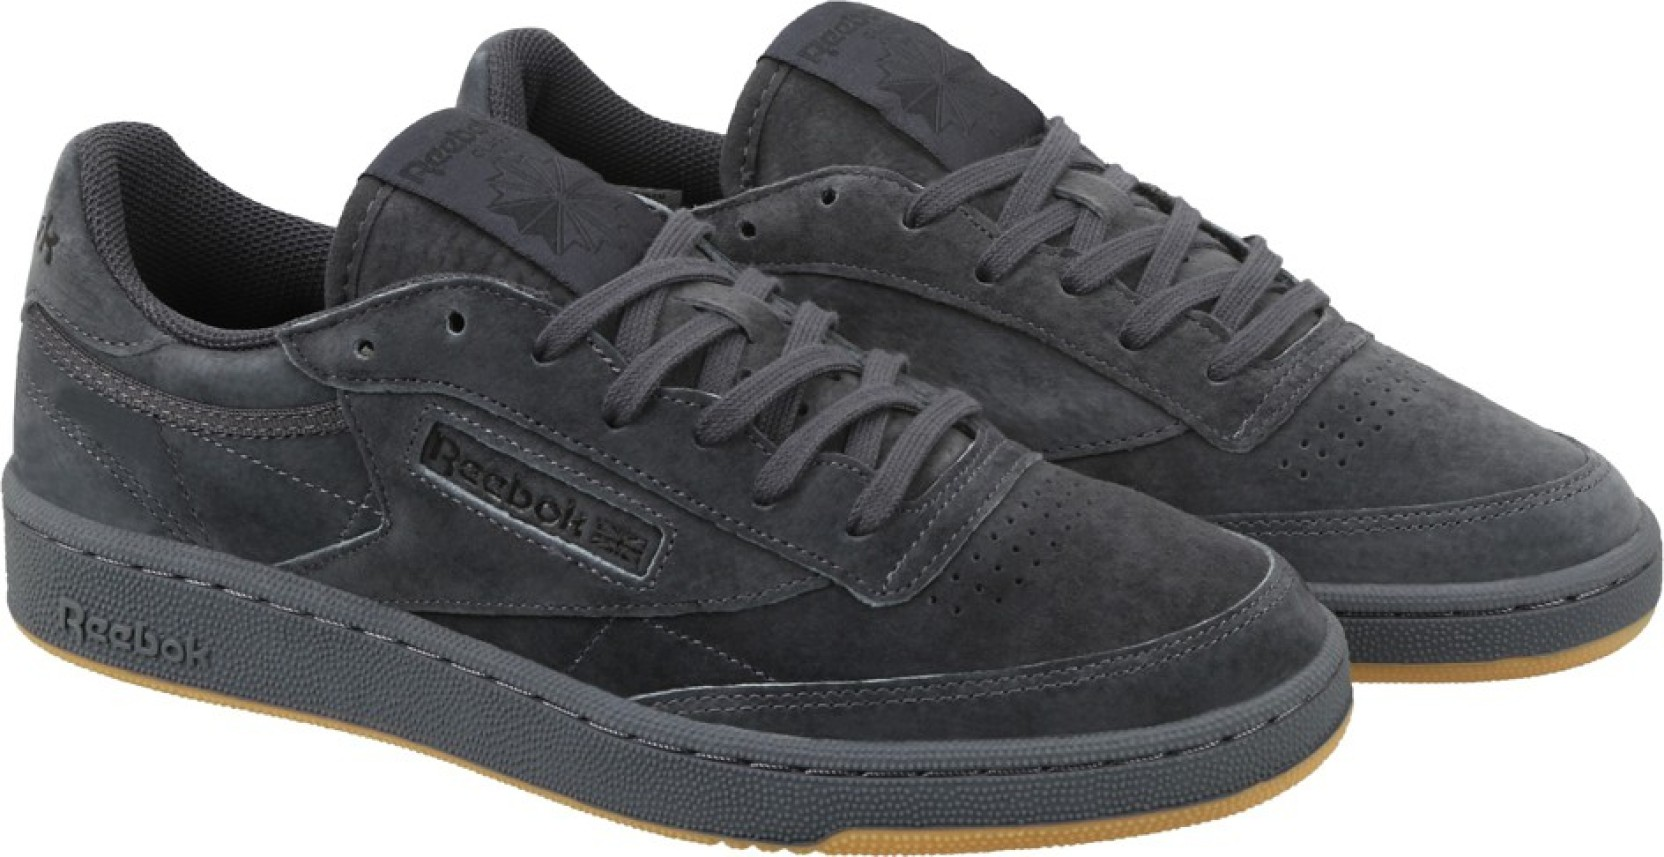 001919dc1d0fe1 REEBOK CLUB C 85 TG Sneakers For Men - Buy LEAD BLACK-GUM Color ...